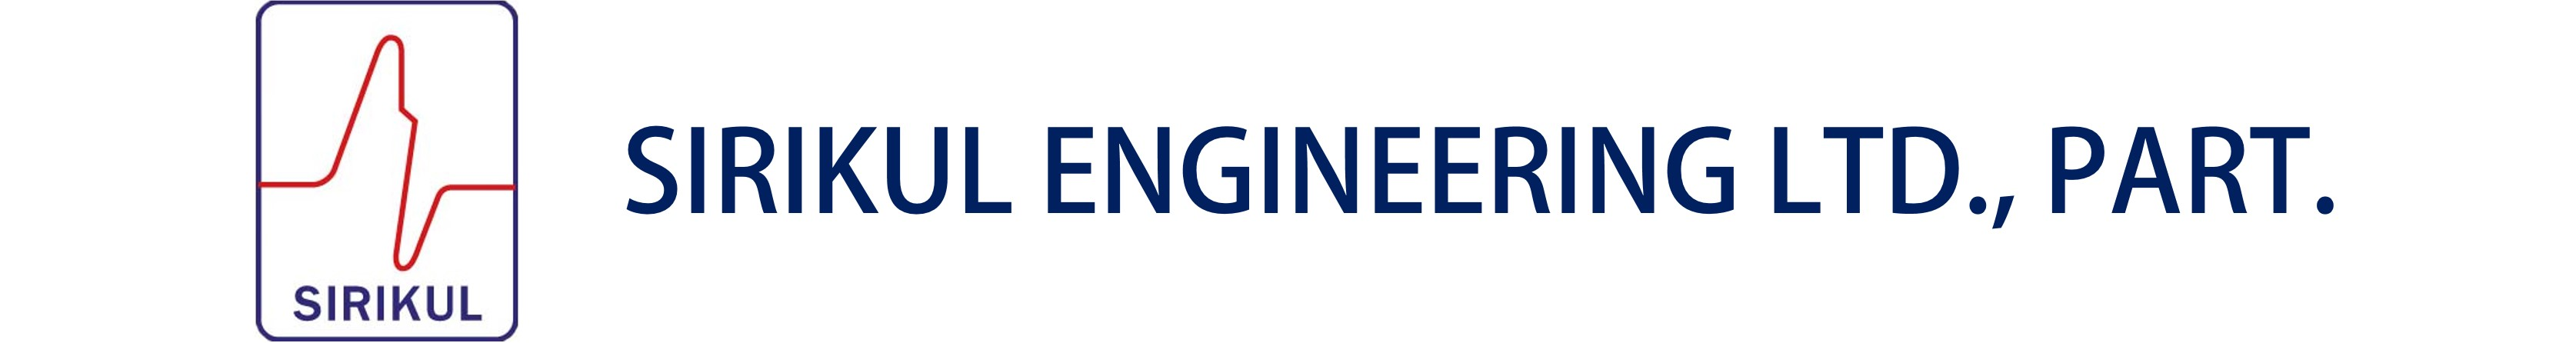 Sirikul Engineering